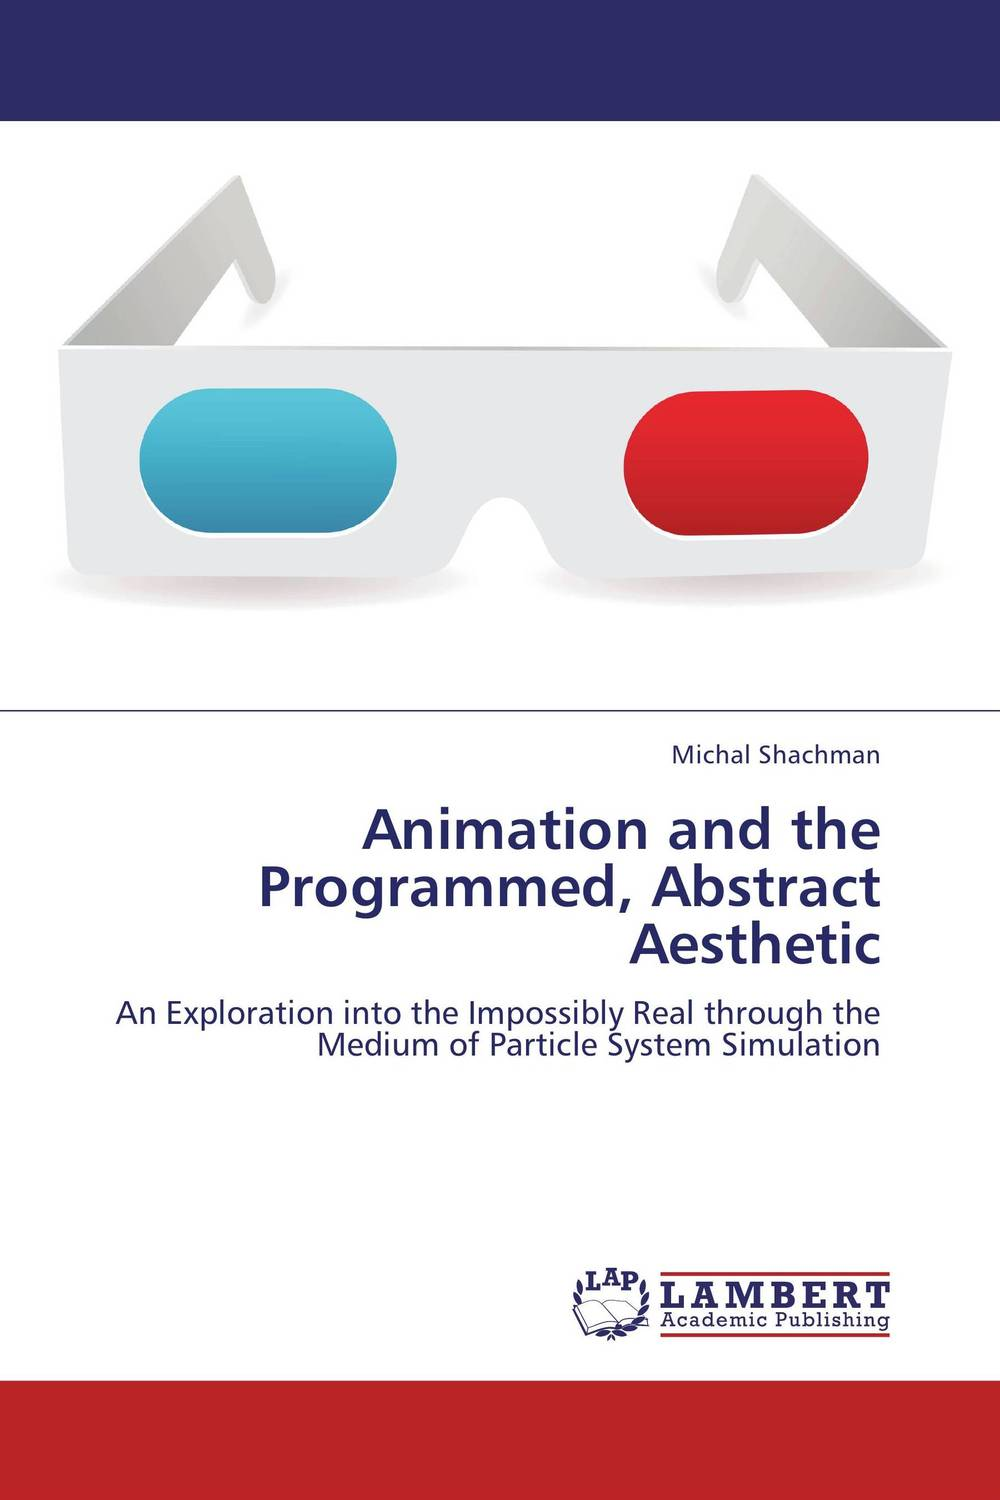 Animation and the Programmed, Abstract Aesthetic